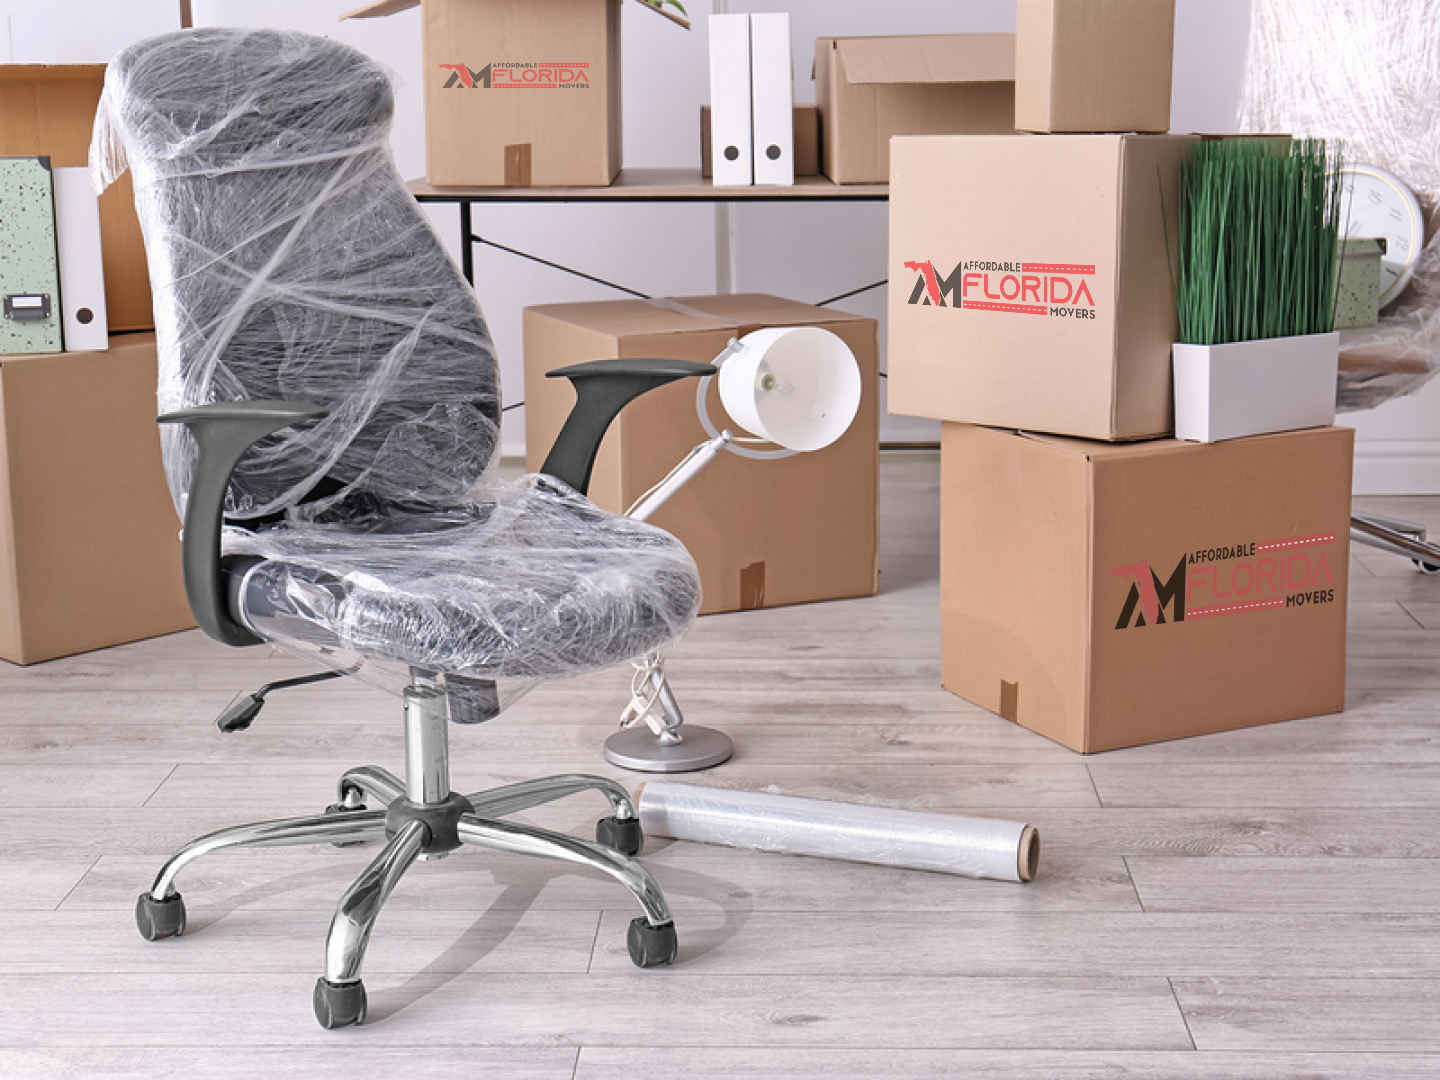 office chair wrapped in plastic surrounded by moving boxes